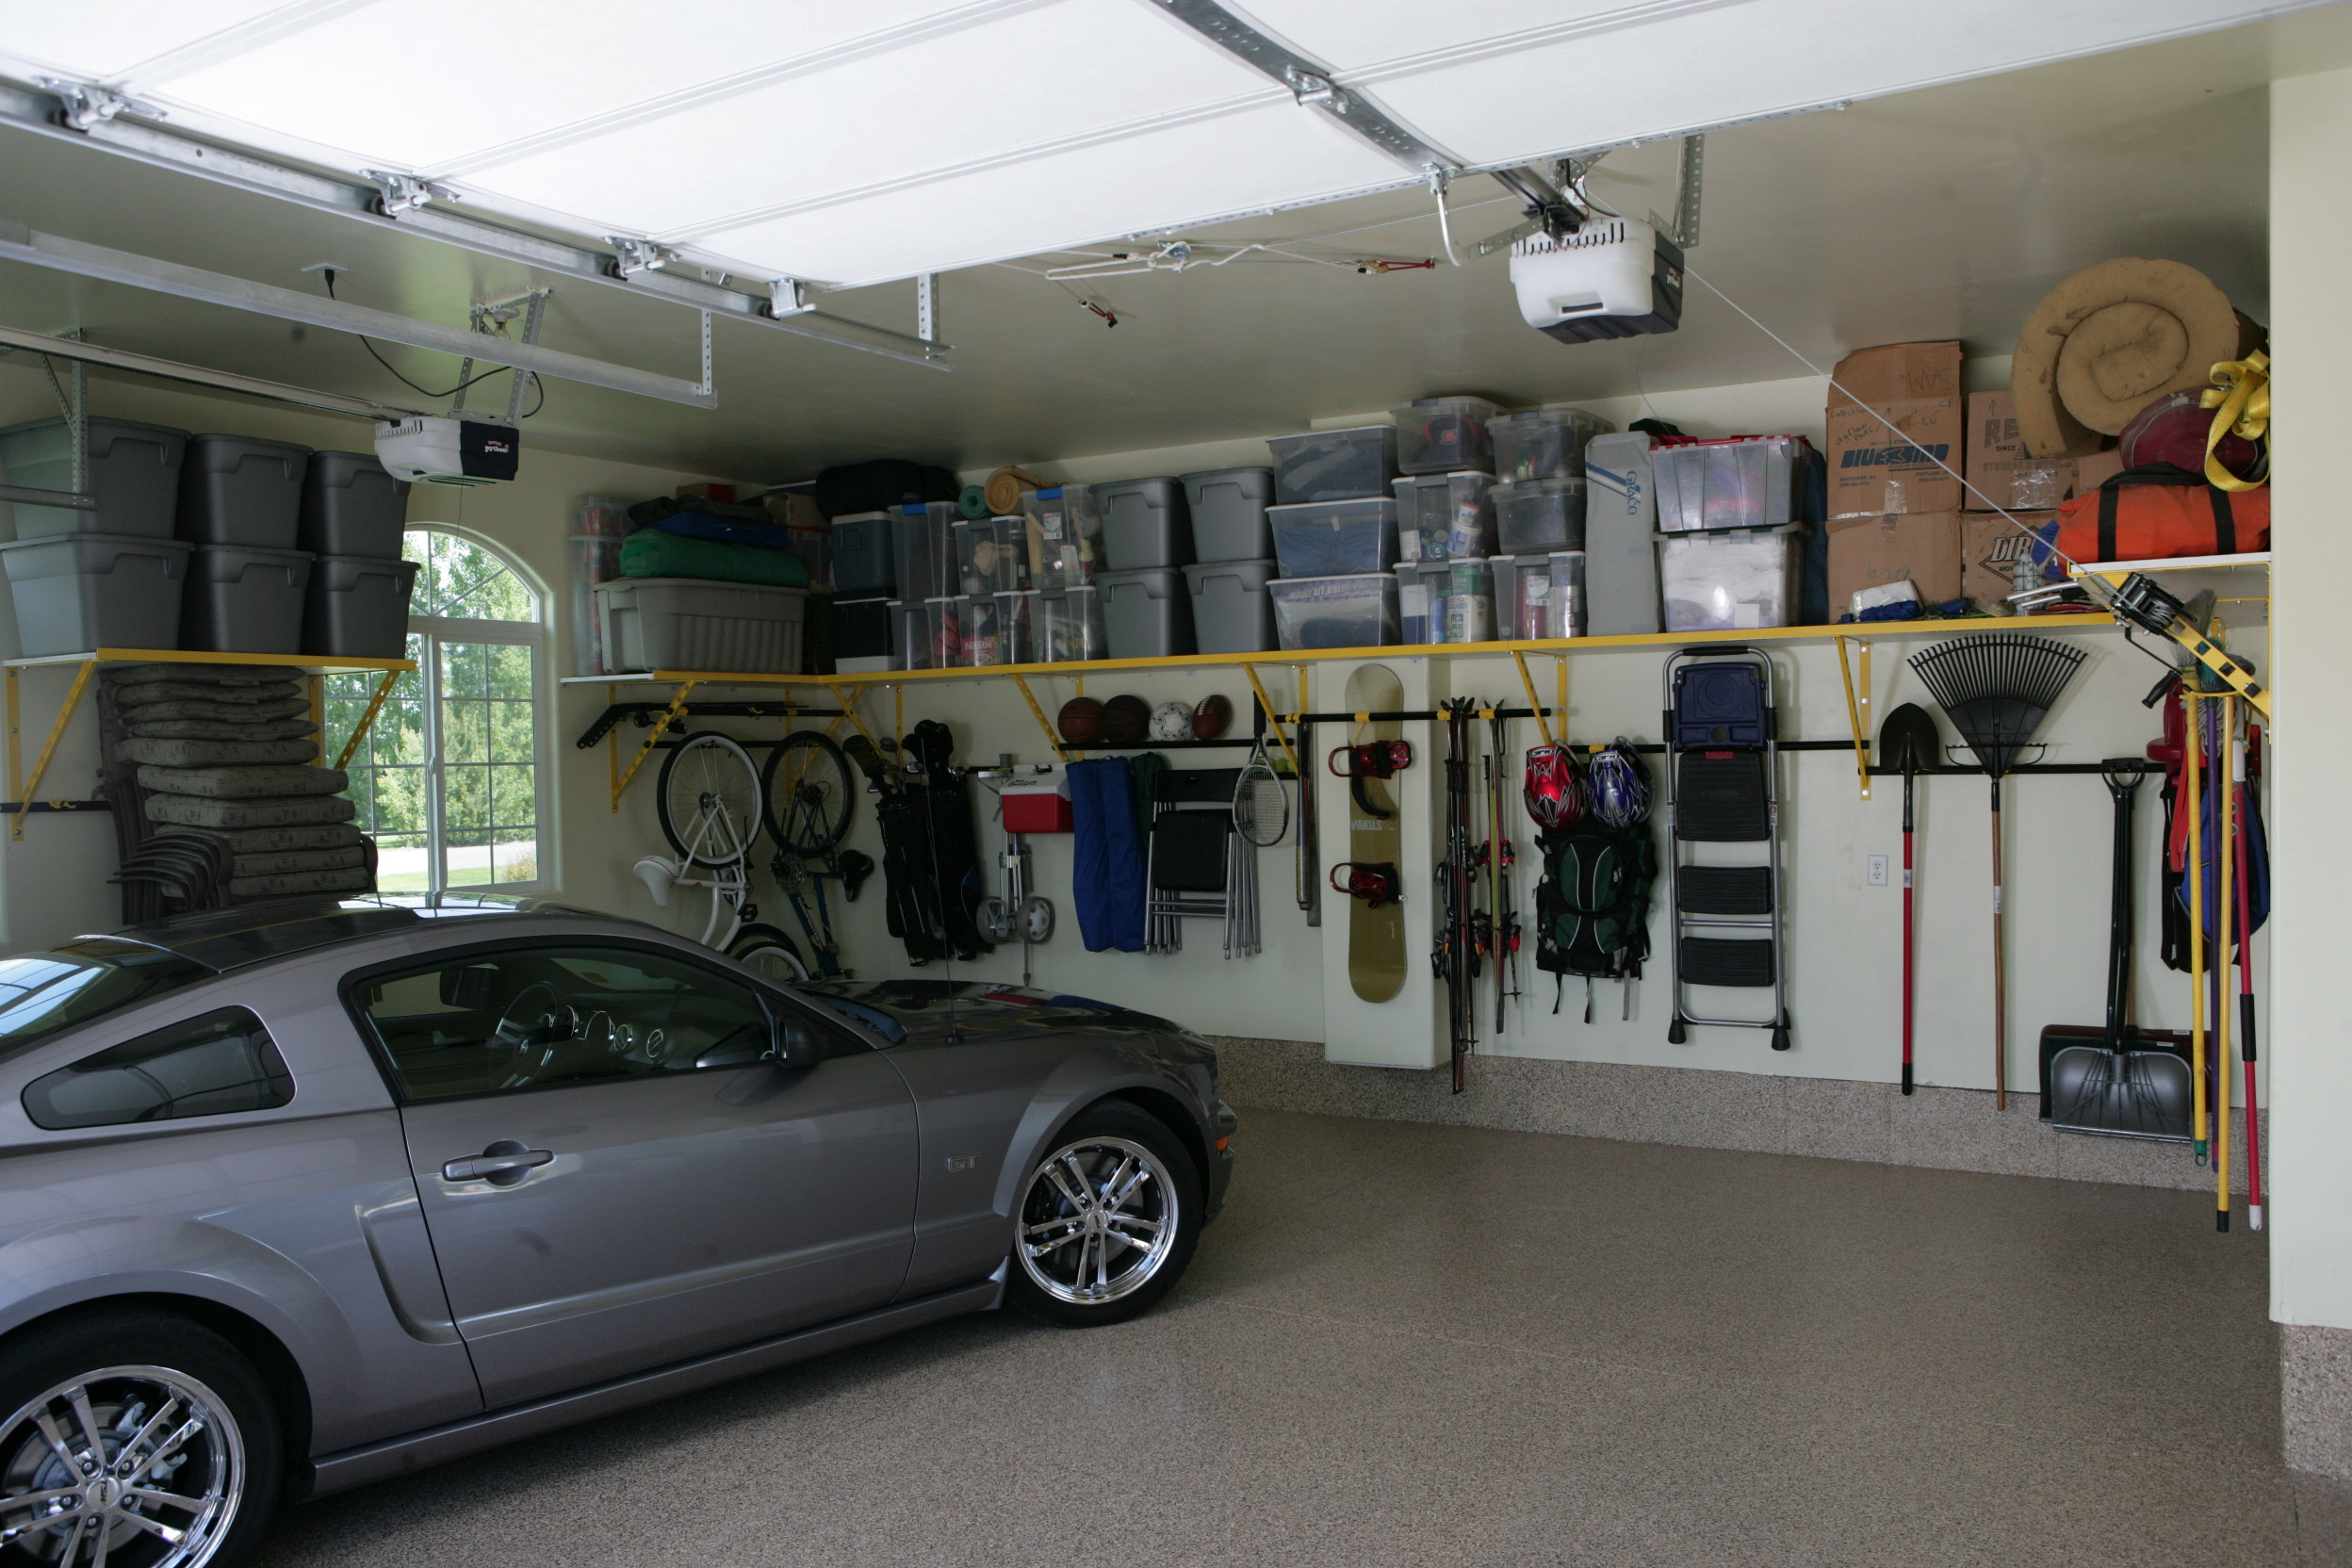 Garage Shelves Is A Simple Way To Save Your Tools: Wonderful Modern Storage Organization Garage Shelves Design Ideas